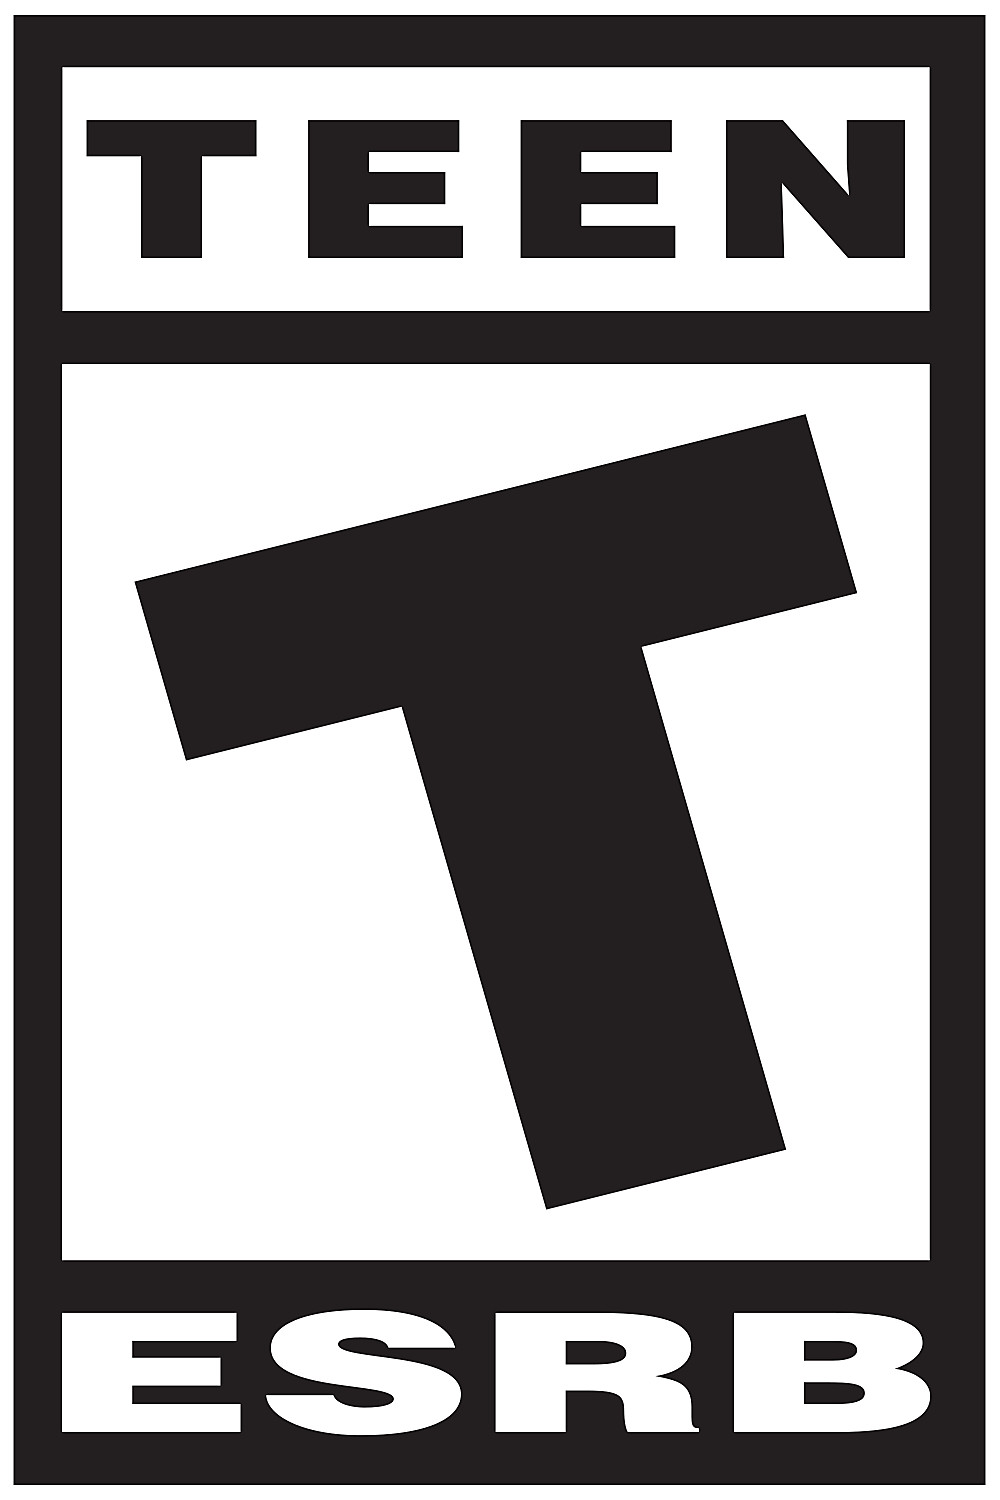 ESRB - T for Teen